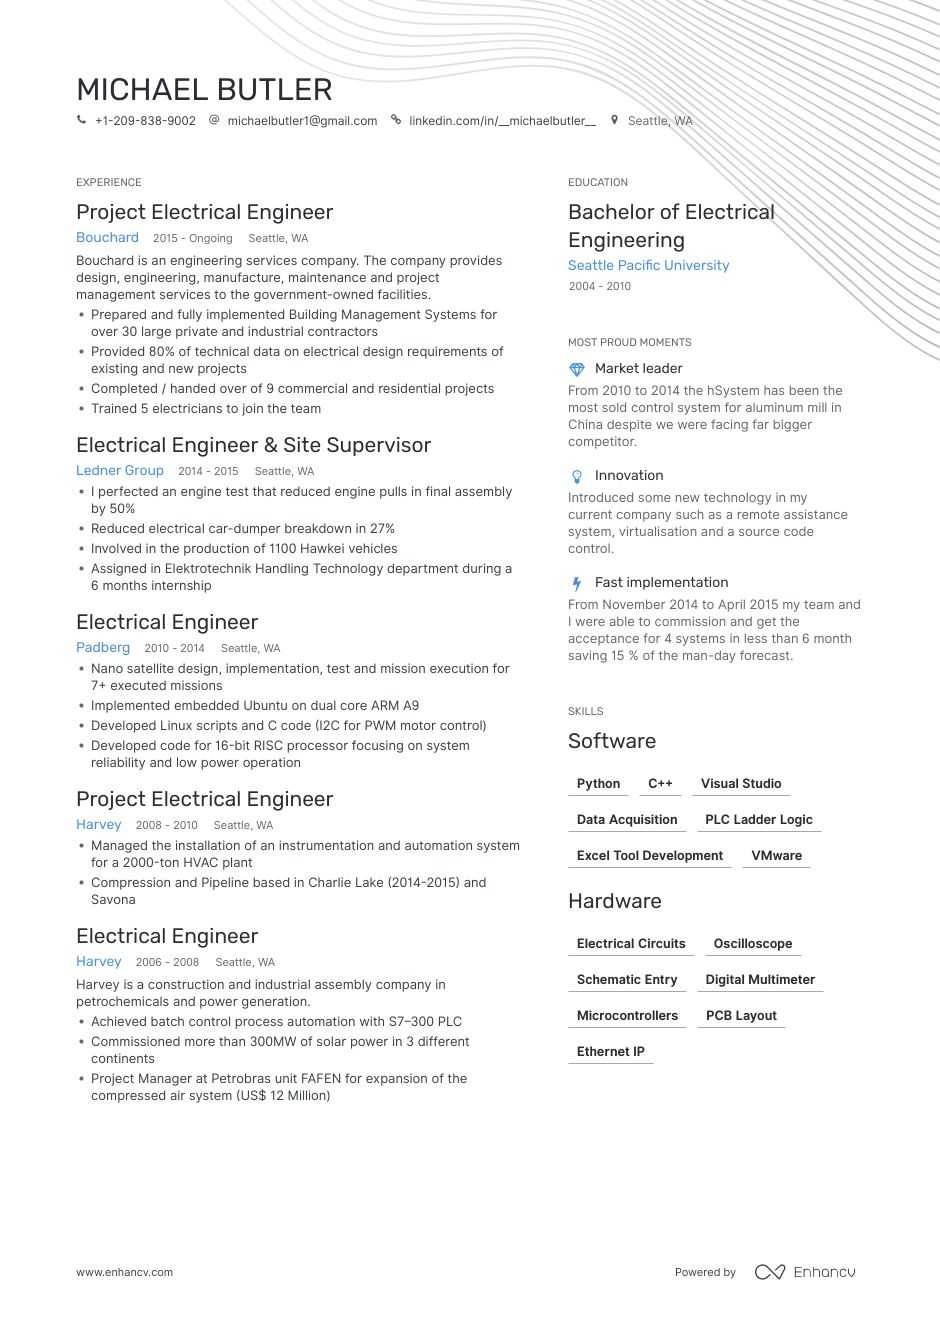 electrical engineer resume examples pro tips featured enhancv computer vision engineering Resume Computer Vision Engineer Resume